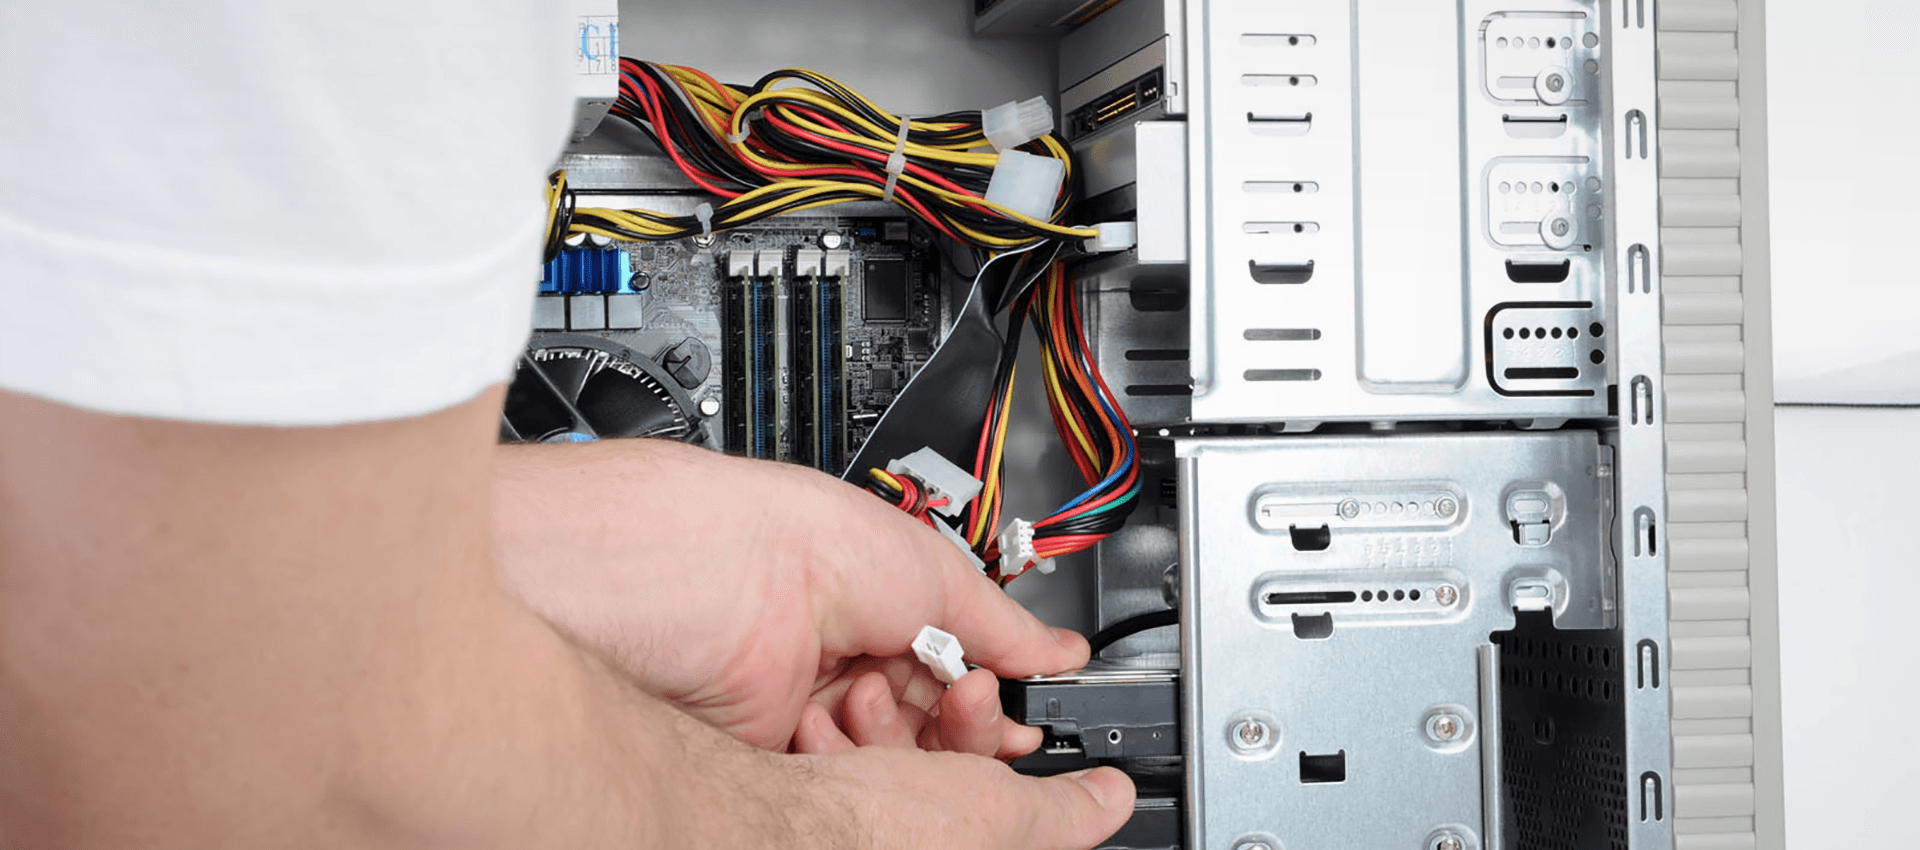 Installing the disk drive